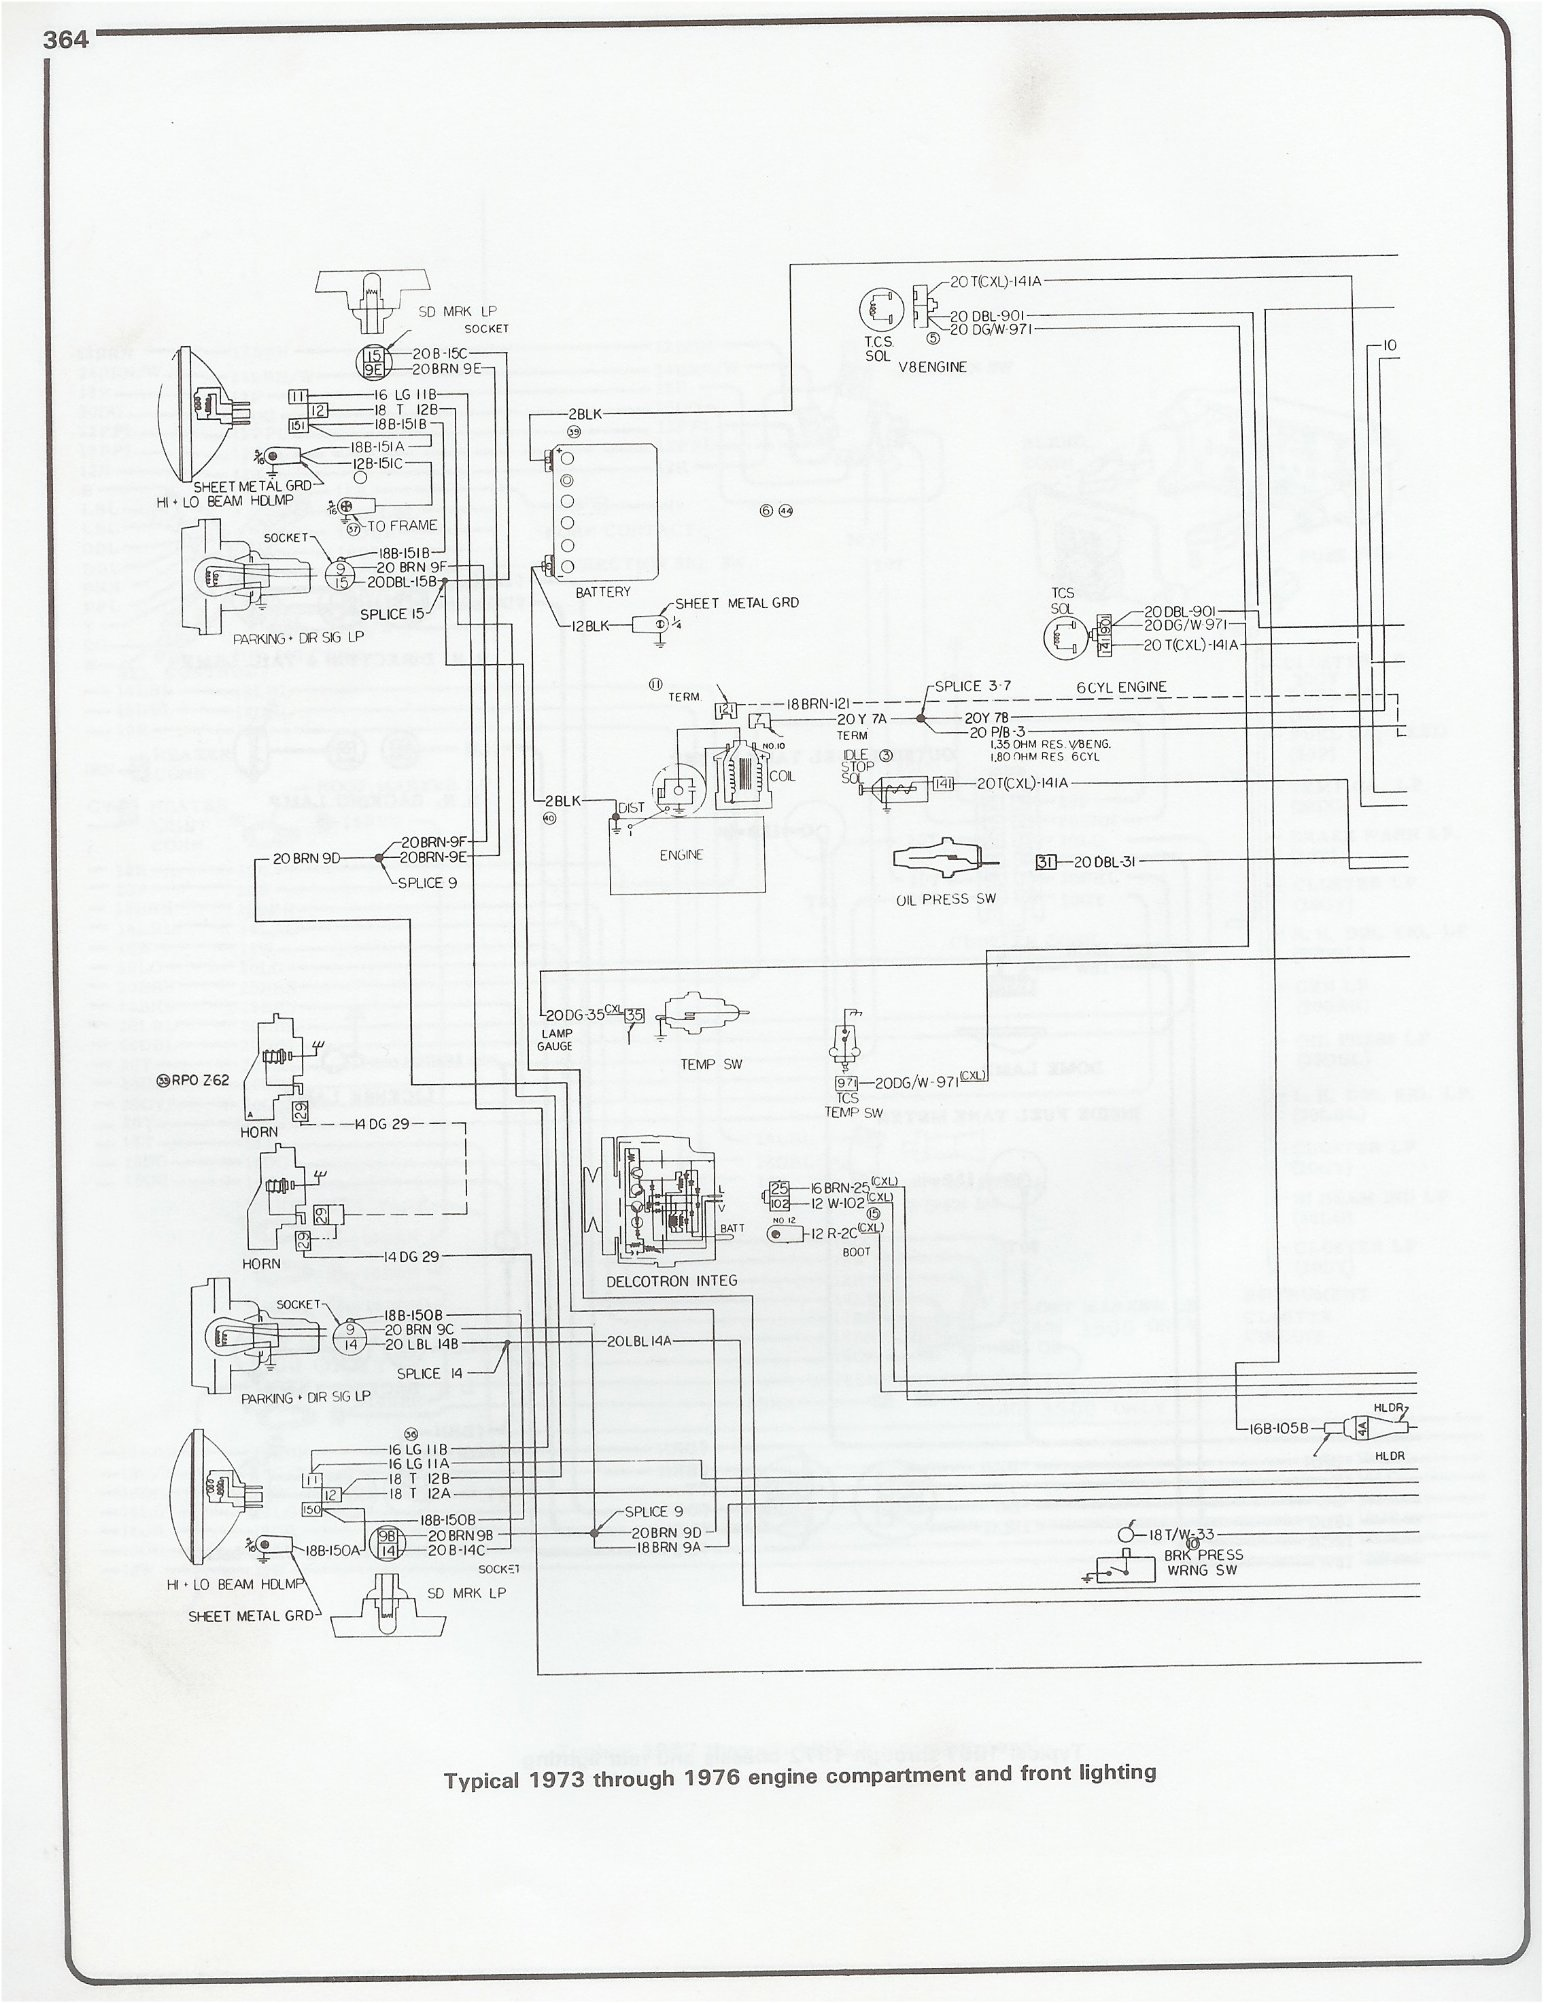 1984 Chevy C10 Wiring Diagram Smart Diagrams 84 Silverado Images Gallery